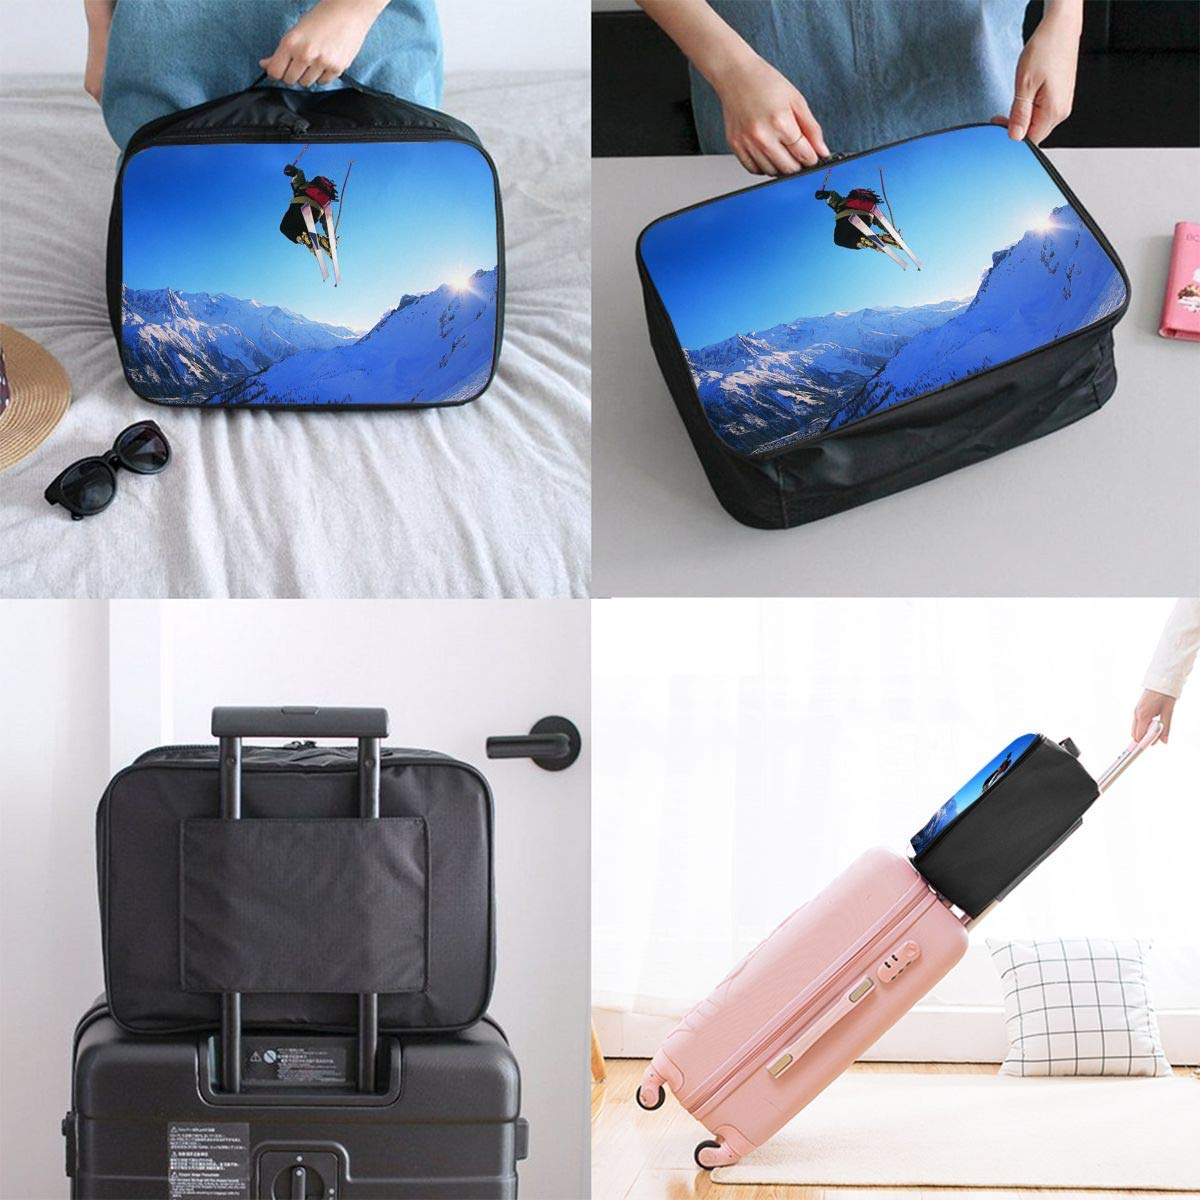 Travel Luggage Duffle Bag Lightweight Portable Handbag Skiing Snow Mountain Large Capacity Waterproof Foldable Storage Tote